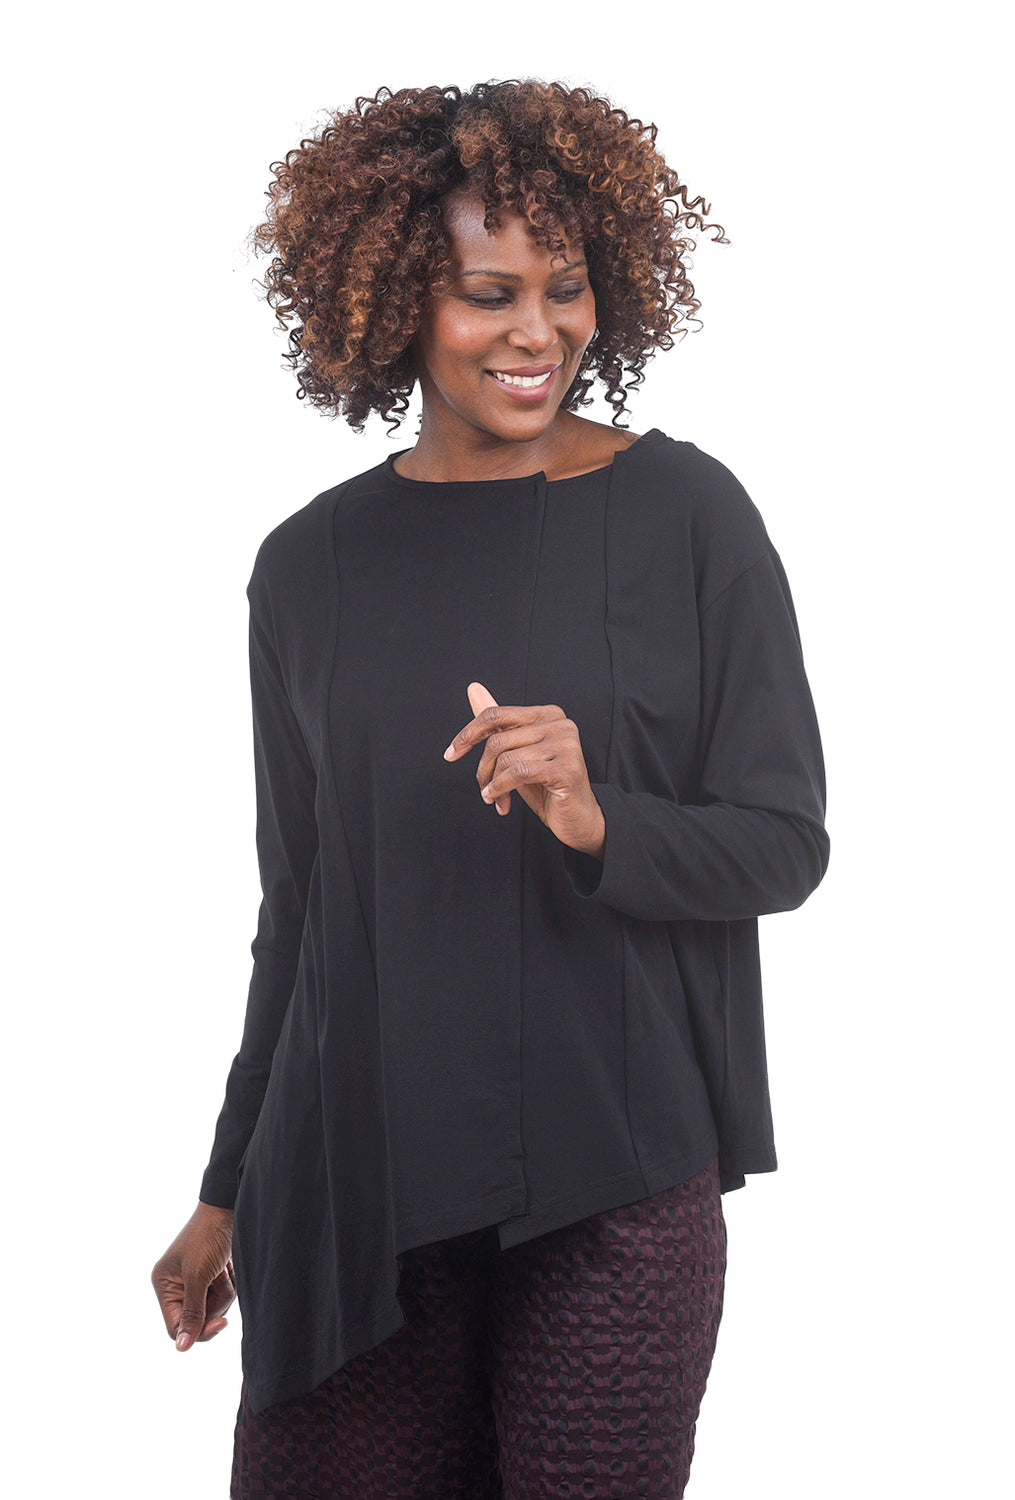 Moyuru Notch Neck Asym Tee, Black